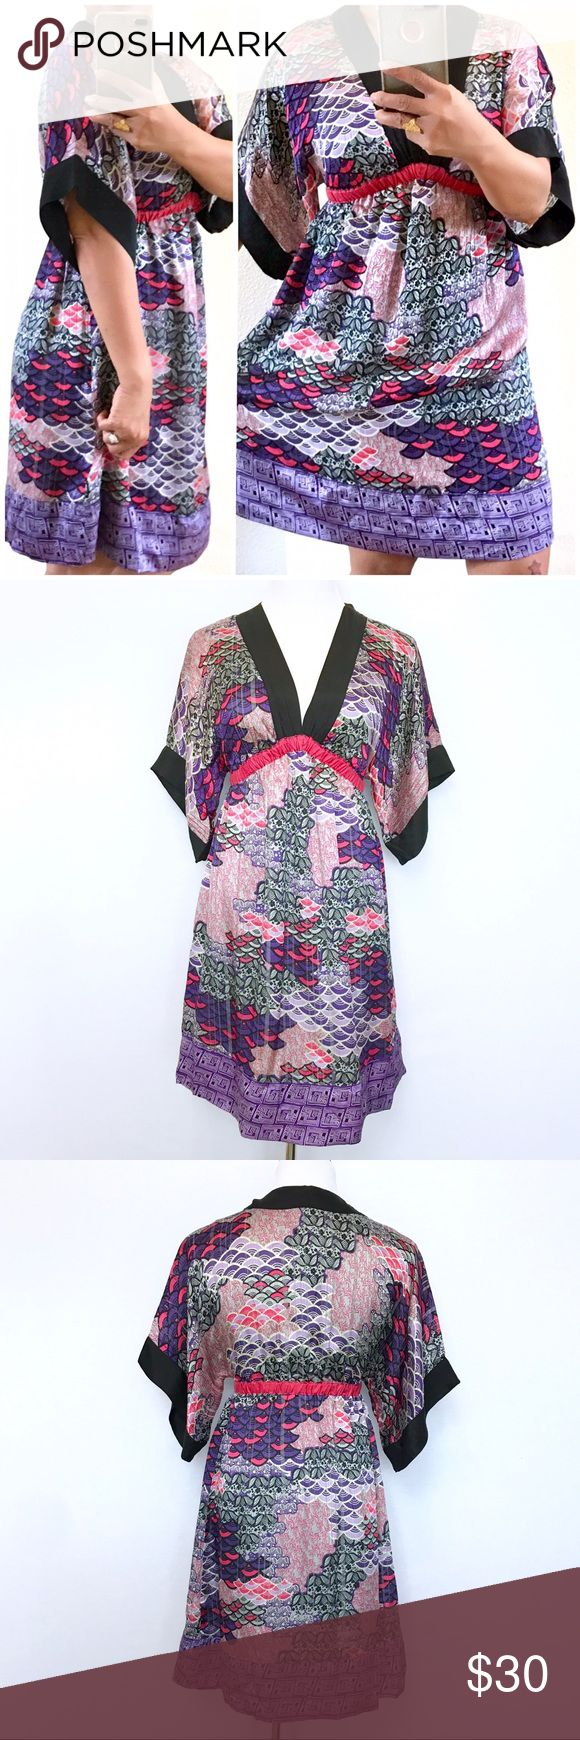 "Mango Collection Kimono Silk Dress Never been worn. Still in great condition. Elastic waist. Size 4. Size S. Lay Flat Measurement; waist 12"". Length Approx-35"". Lined. Sleeve from pit to hem-7.5"". No Trades. No low ball offers Mango Dresses Mini"